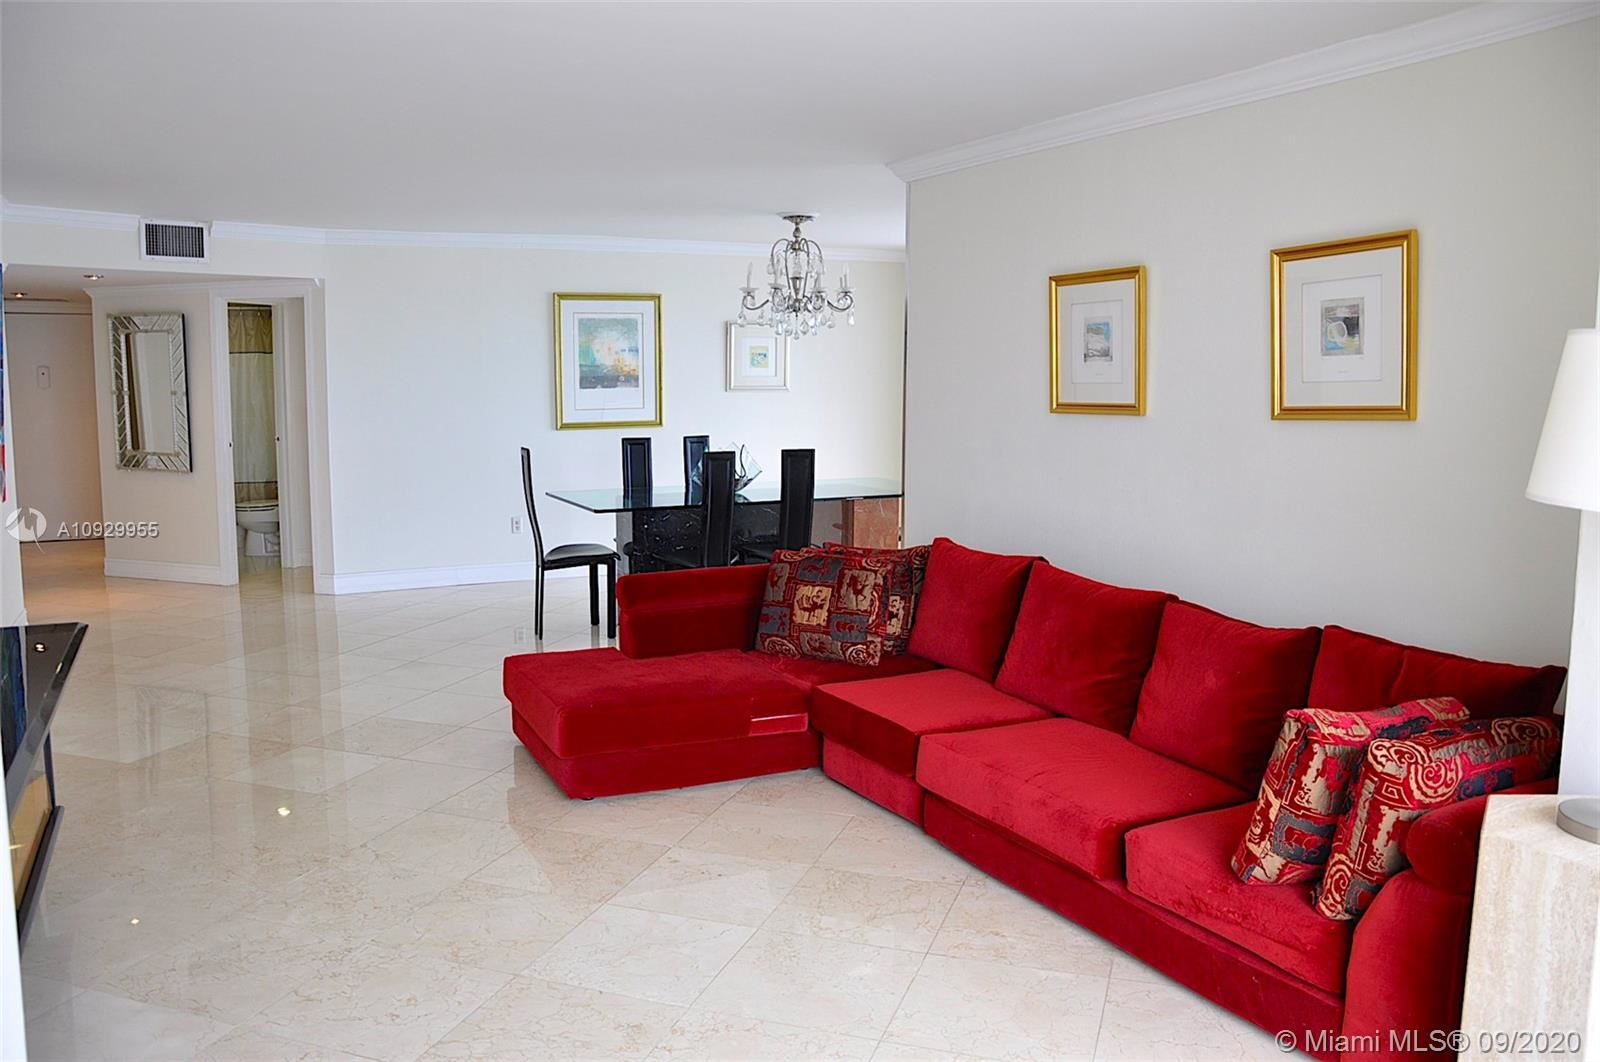 2333 Brickell Ave #1606, Miami, FL 33129 - #: A10929955